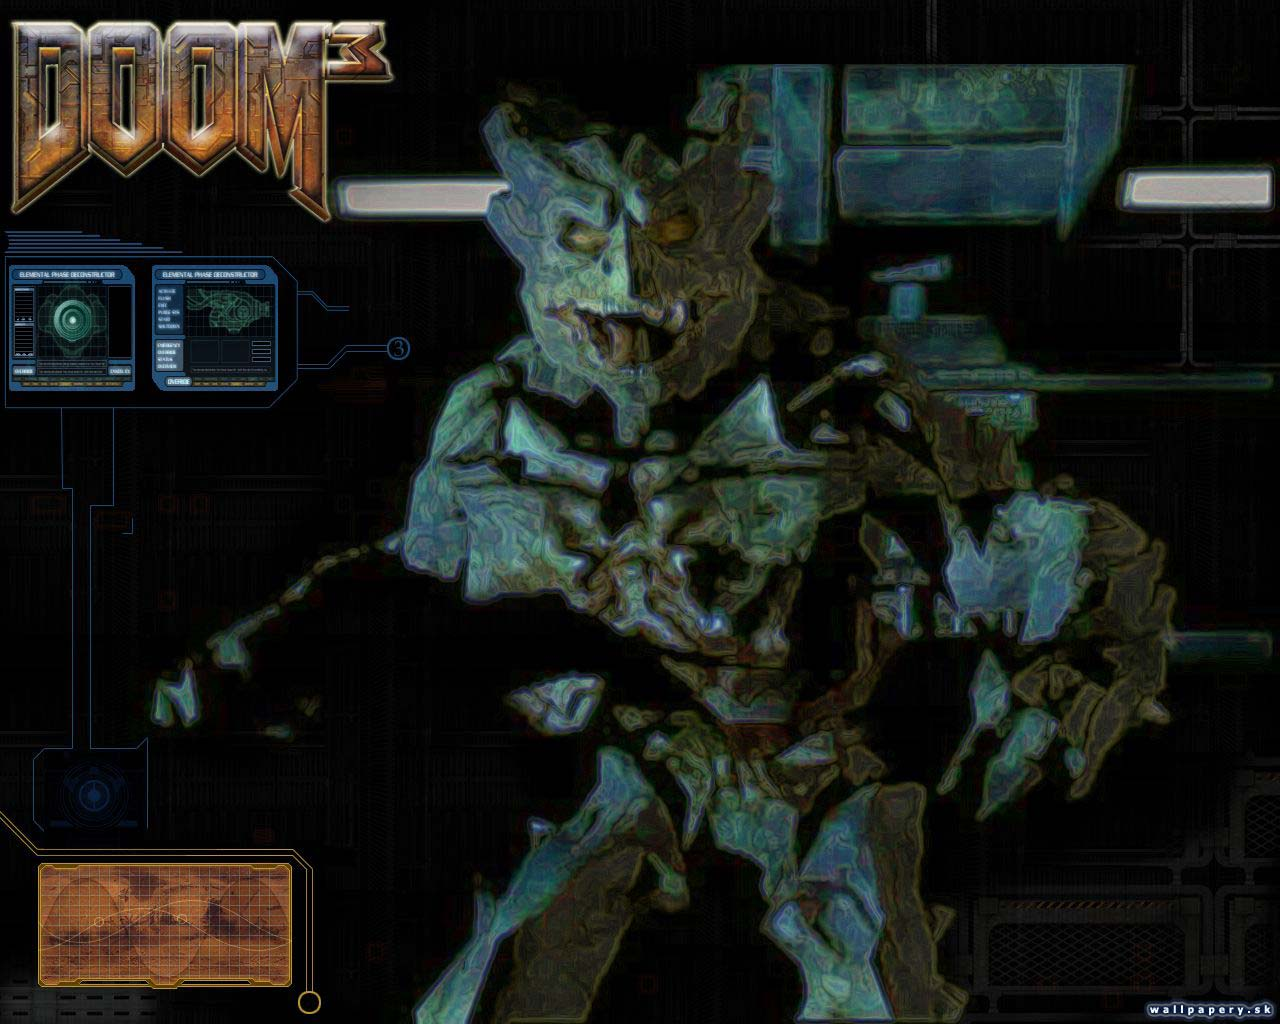 Doom 3 - How to update to v131 - YouTube